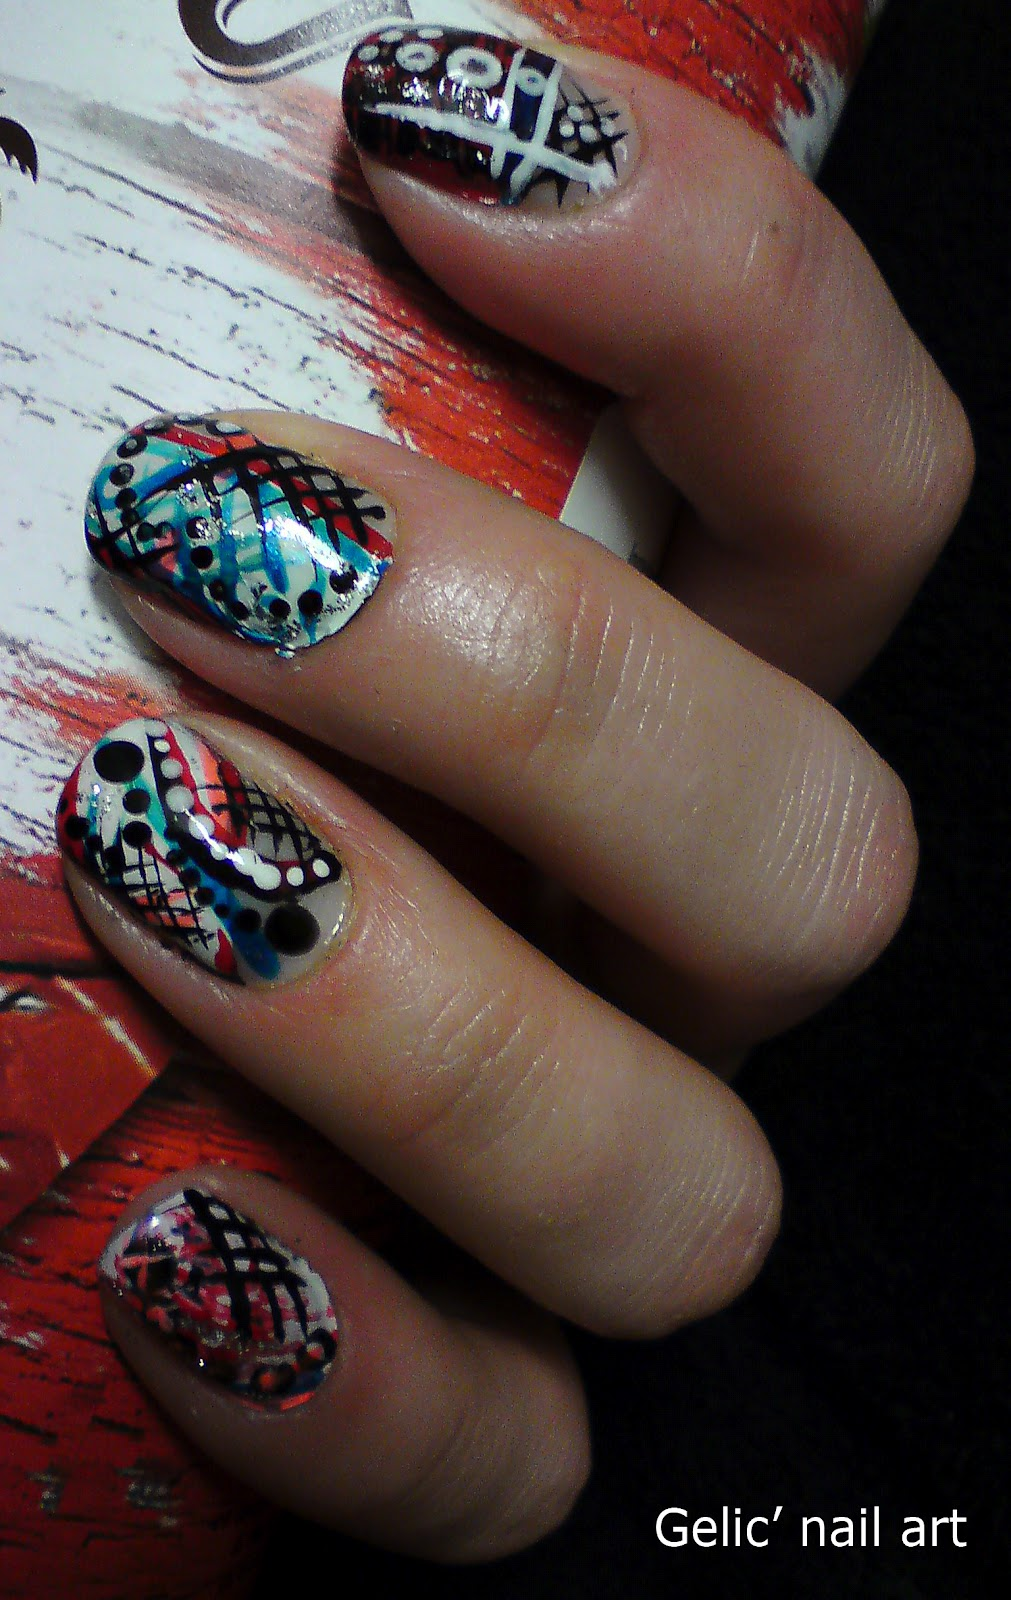 Gelic' nail art: Dots and stripes mix nail art in white ...